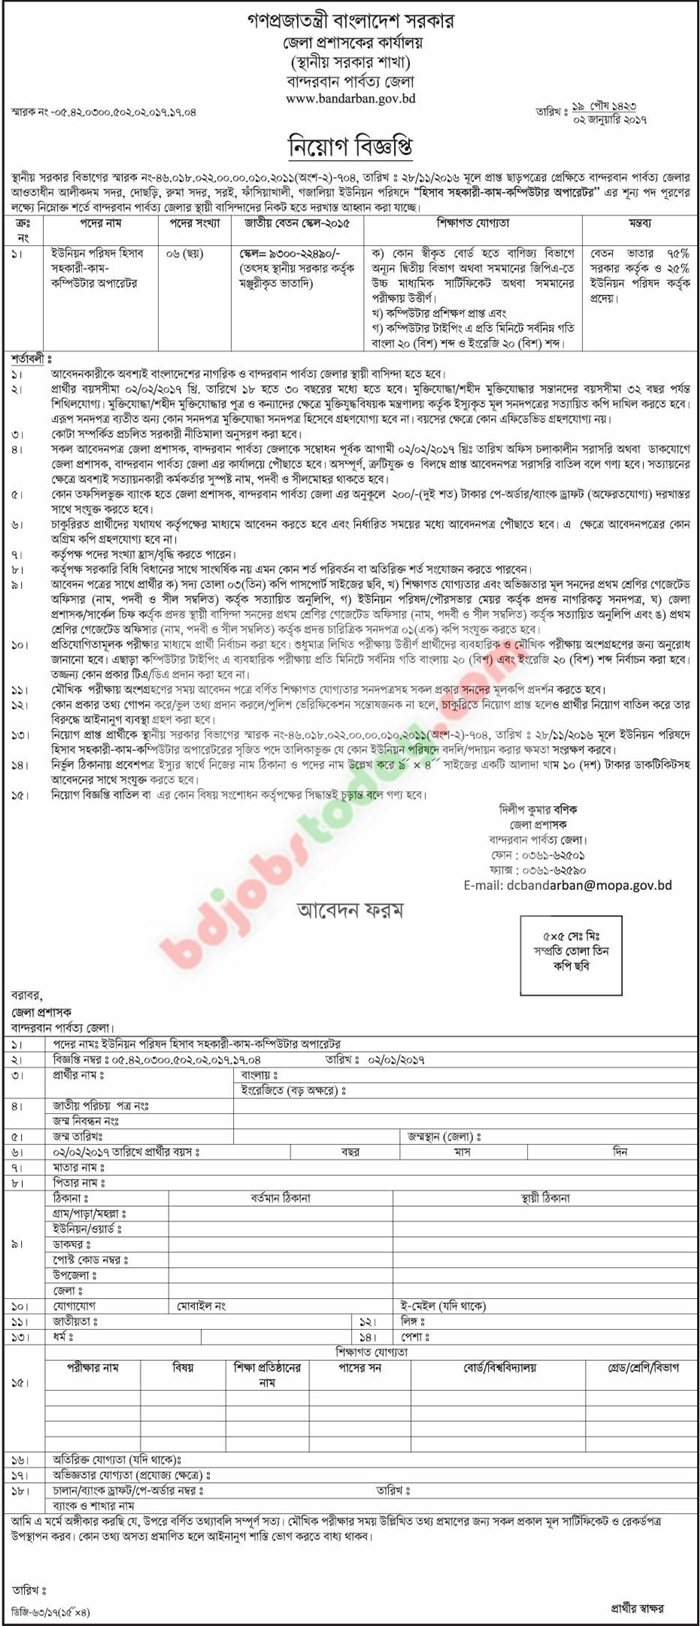 Office of District Commissioner, Bandarban Hill Tracks jobs